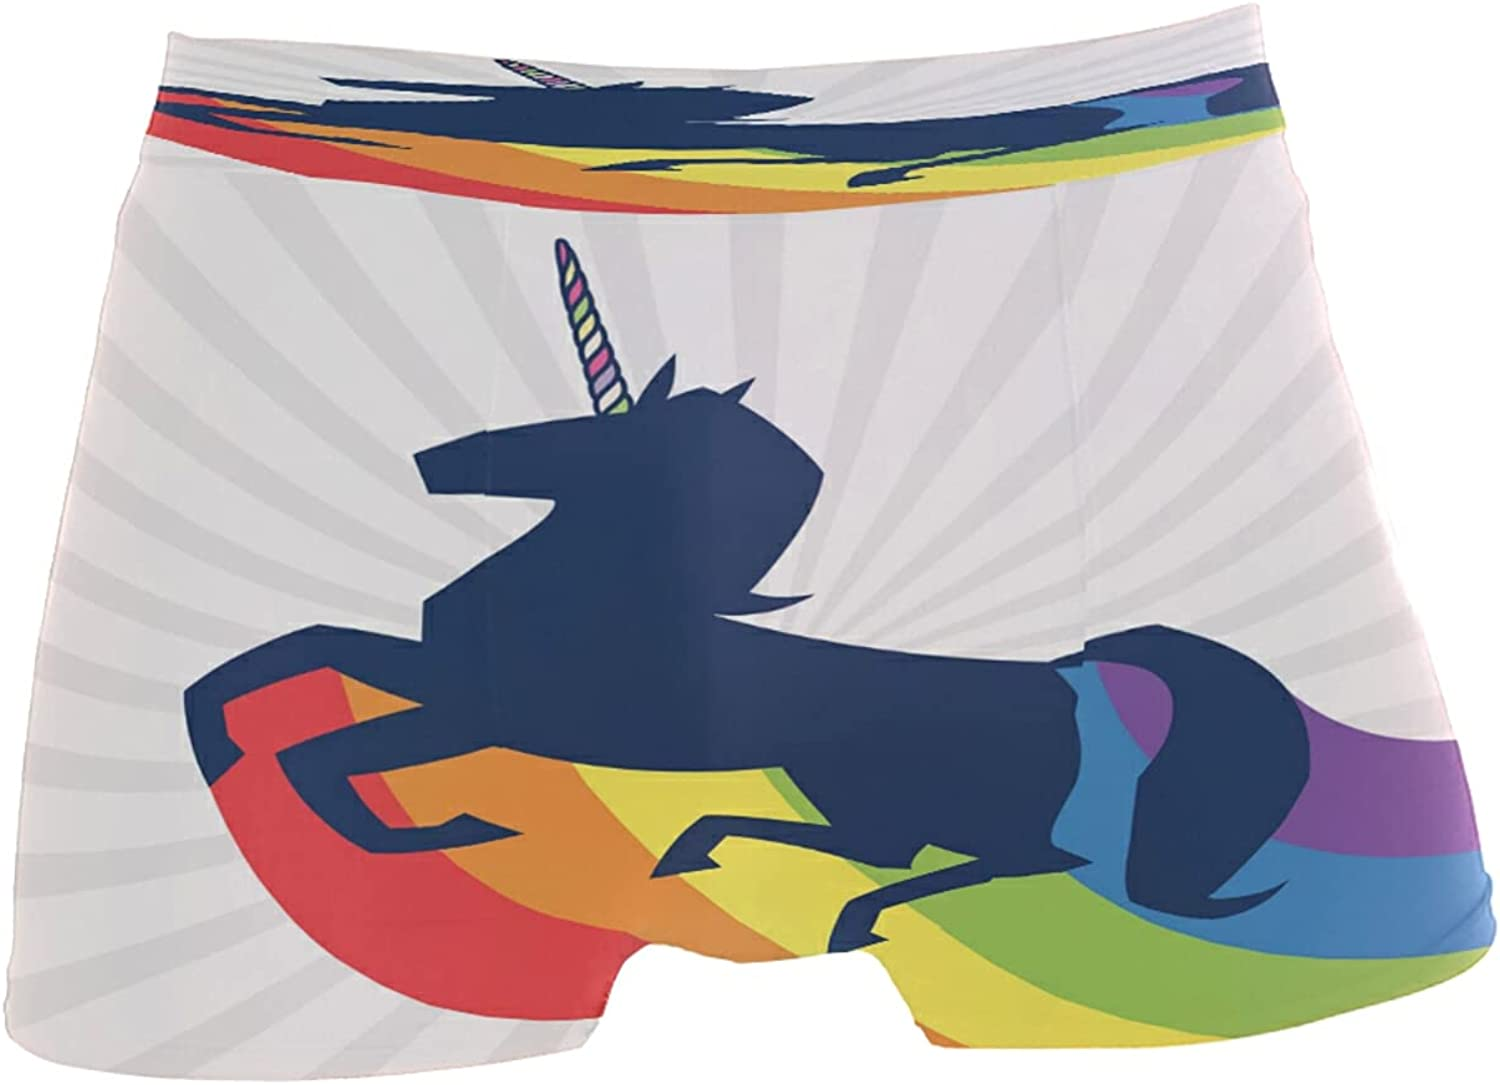 Men's Unicorn Silhouette With Rainbow And Shine Boxer Briefs Underwear Soft Underpants Stretch Breathable